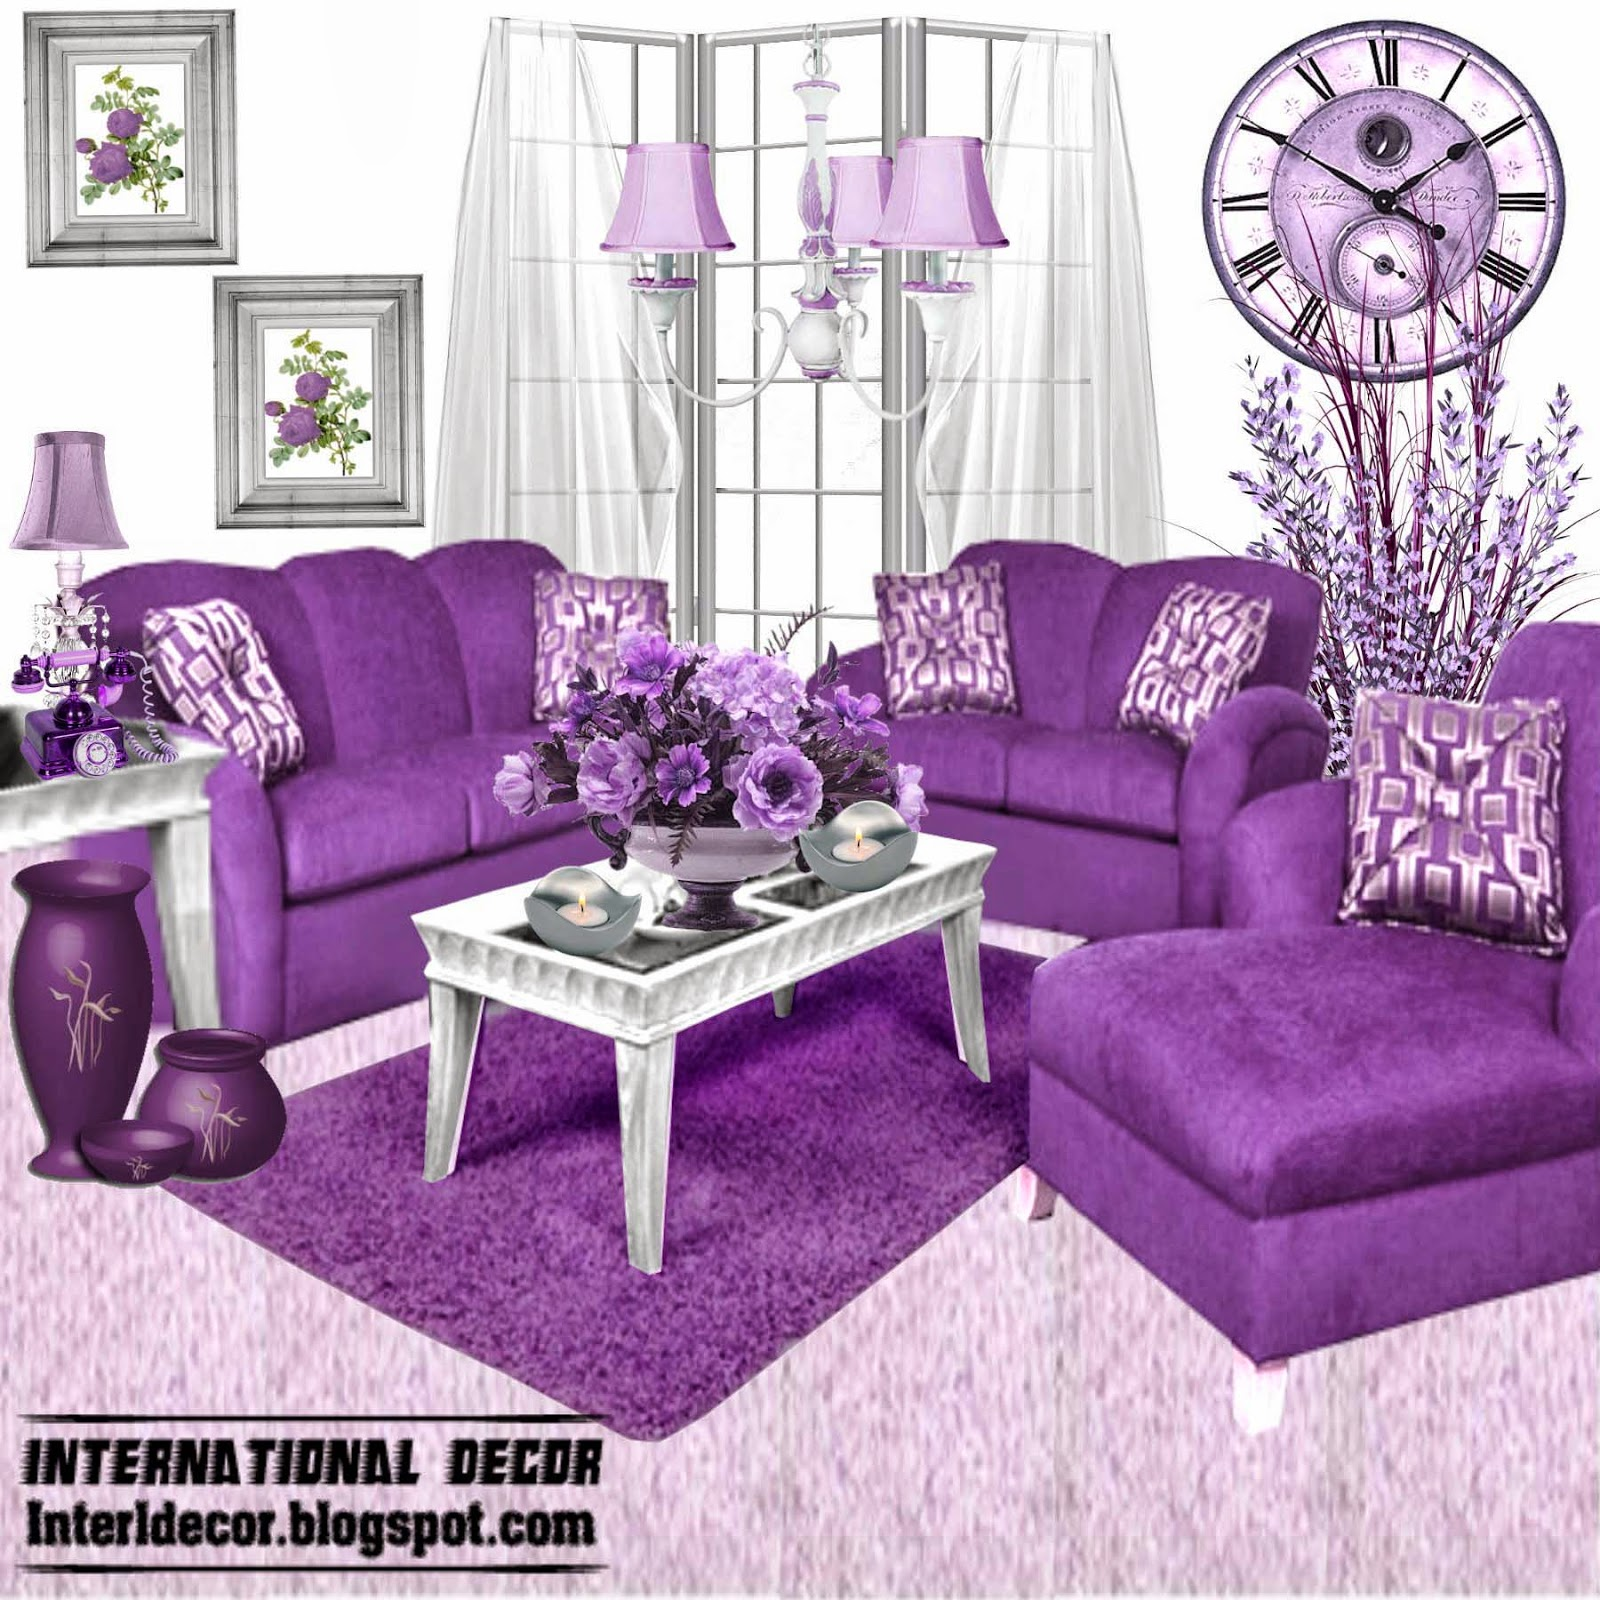 Purple furniture for the home pinterest purple for Family room sofa sets